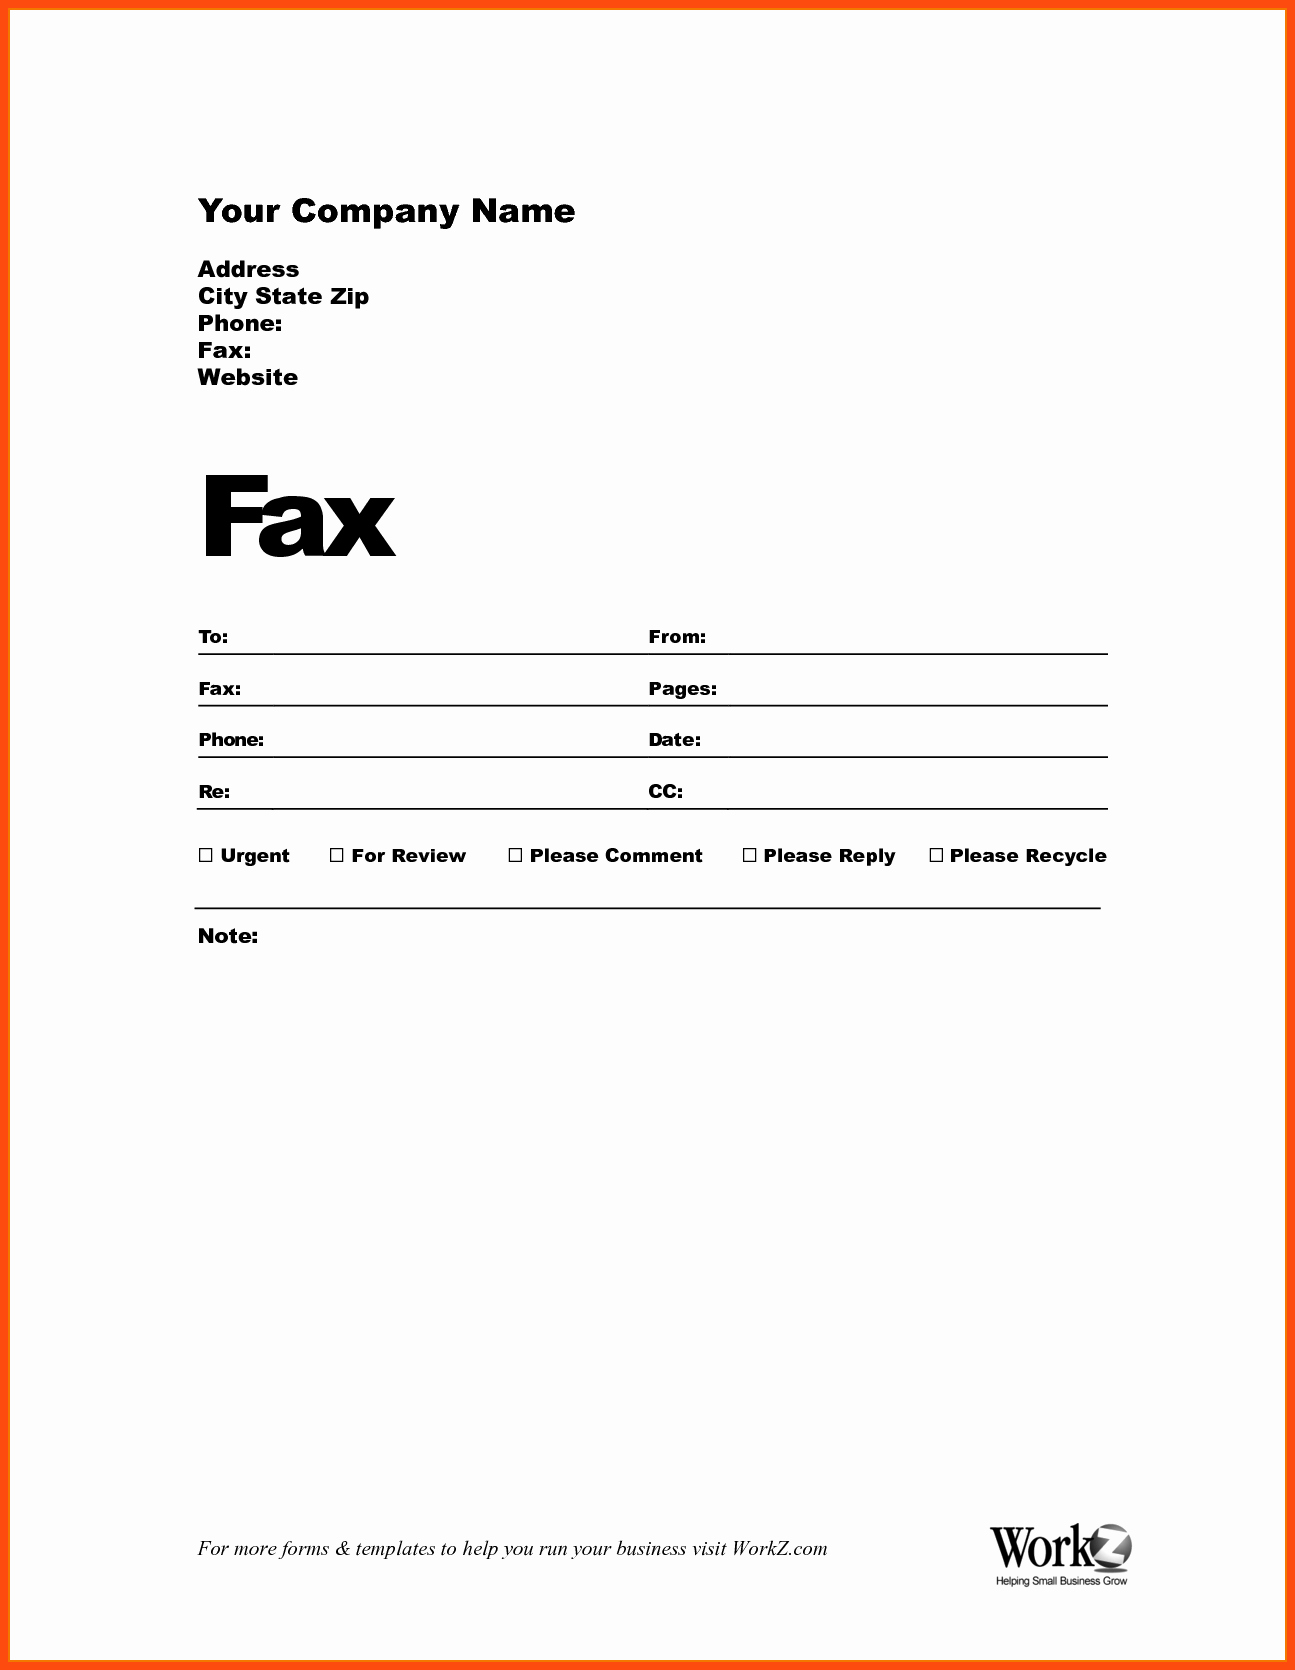 Example Of Fax Cover Sheet Best Of How to Fill Out A Fax Cover Sheet